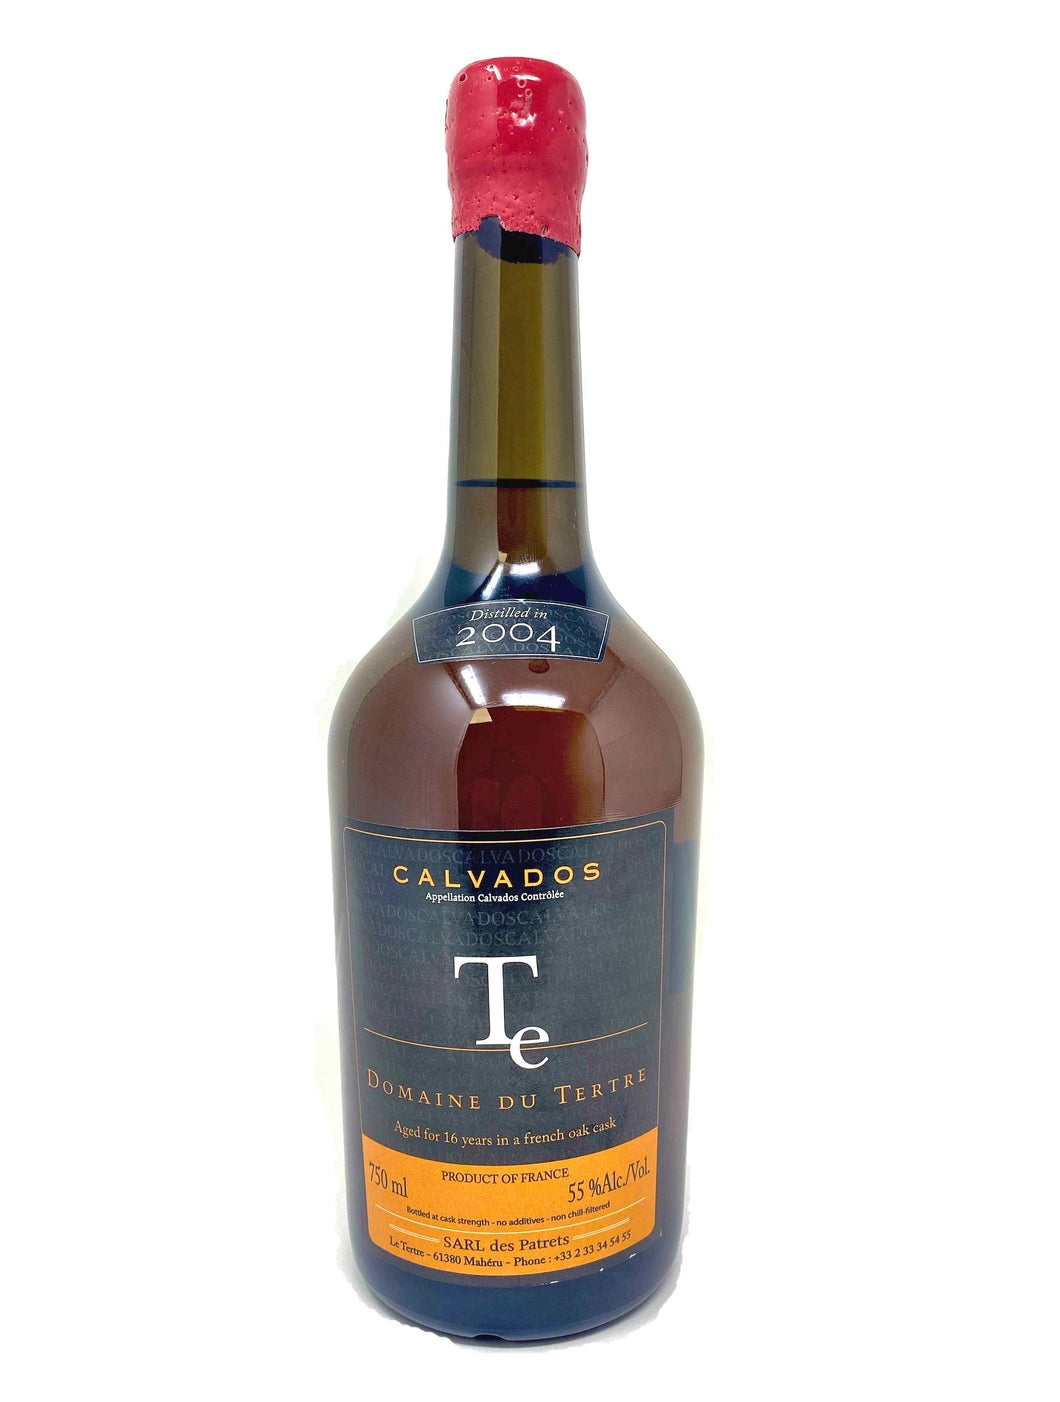 Domaine du Tertre 2004 Calvados - Selected by Seelbach's